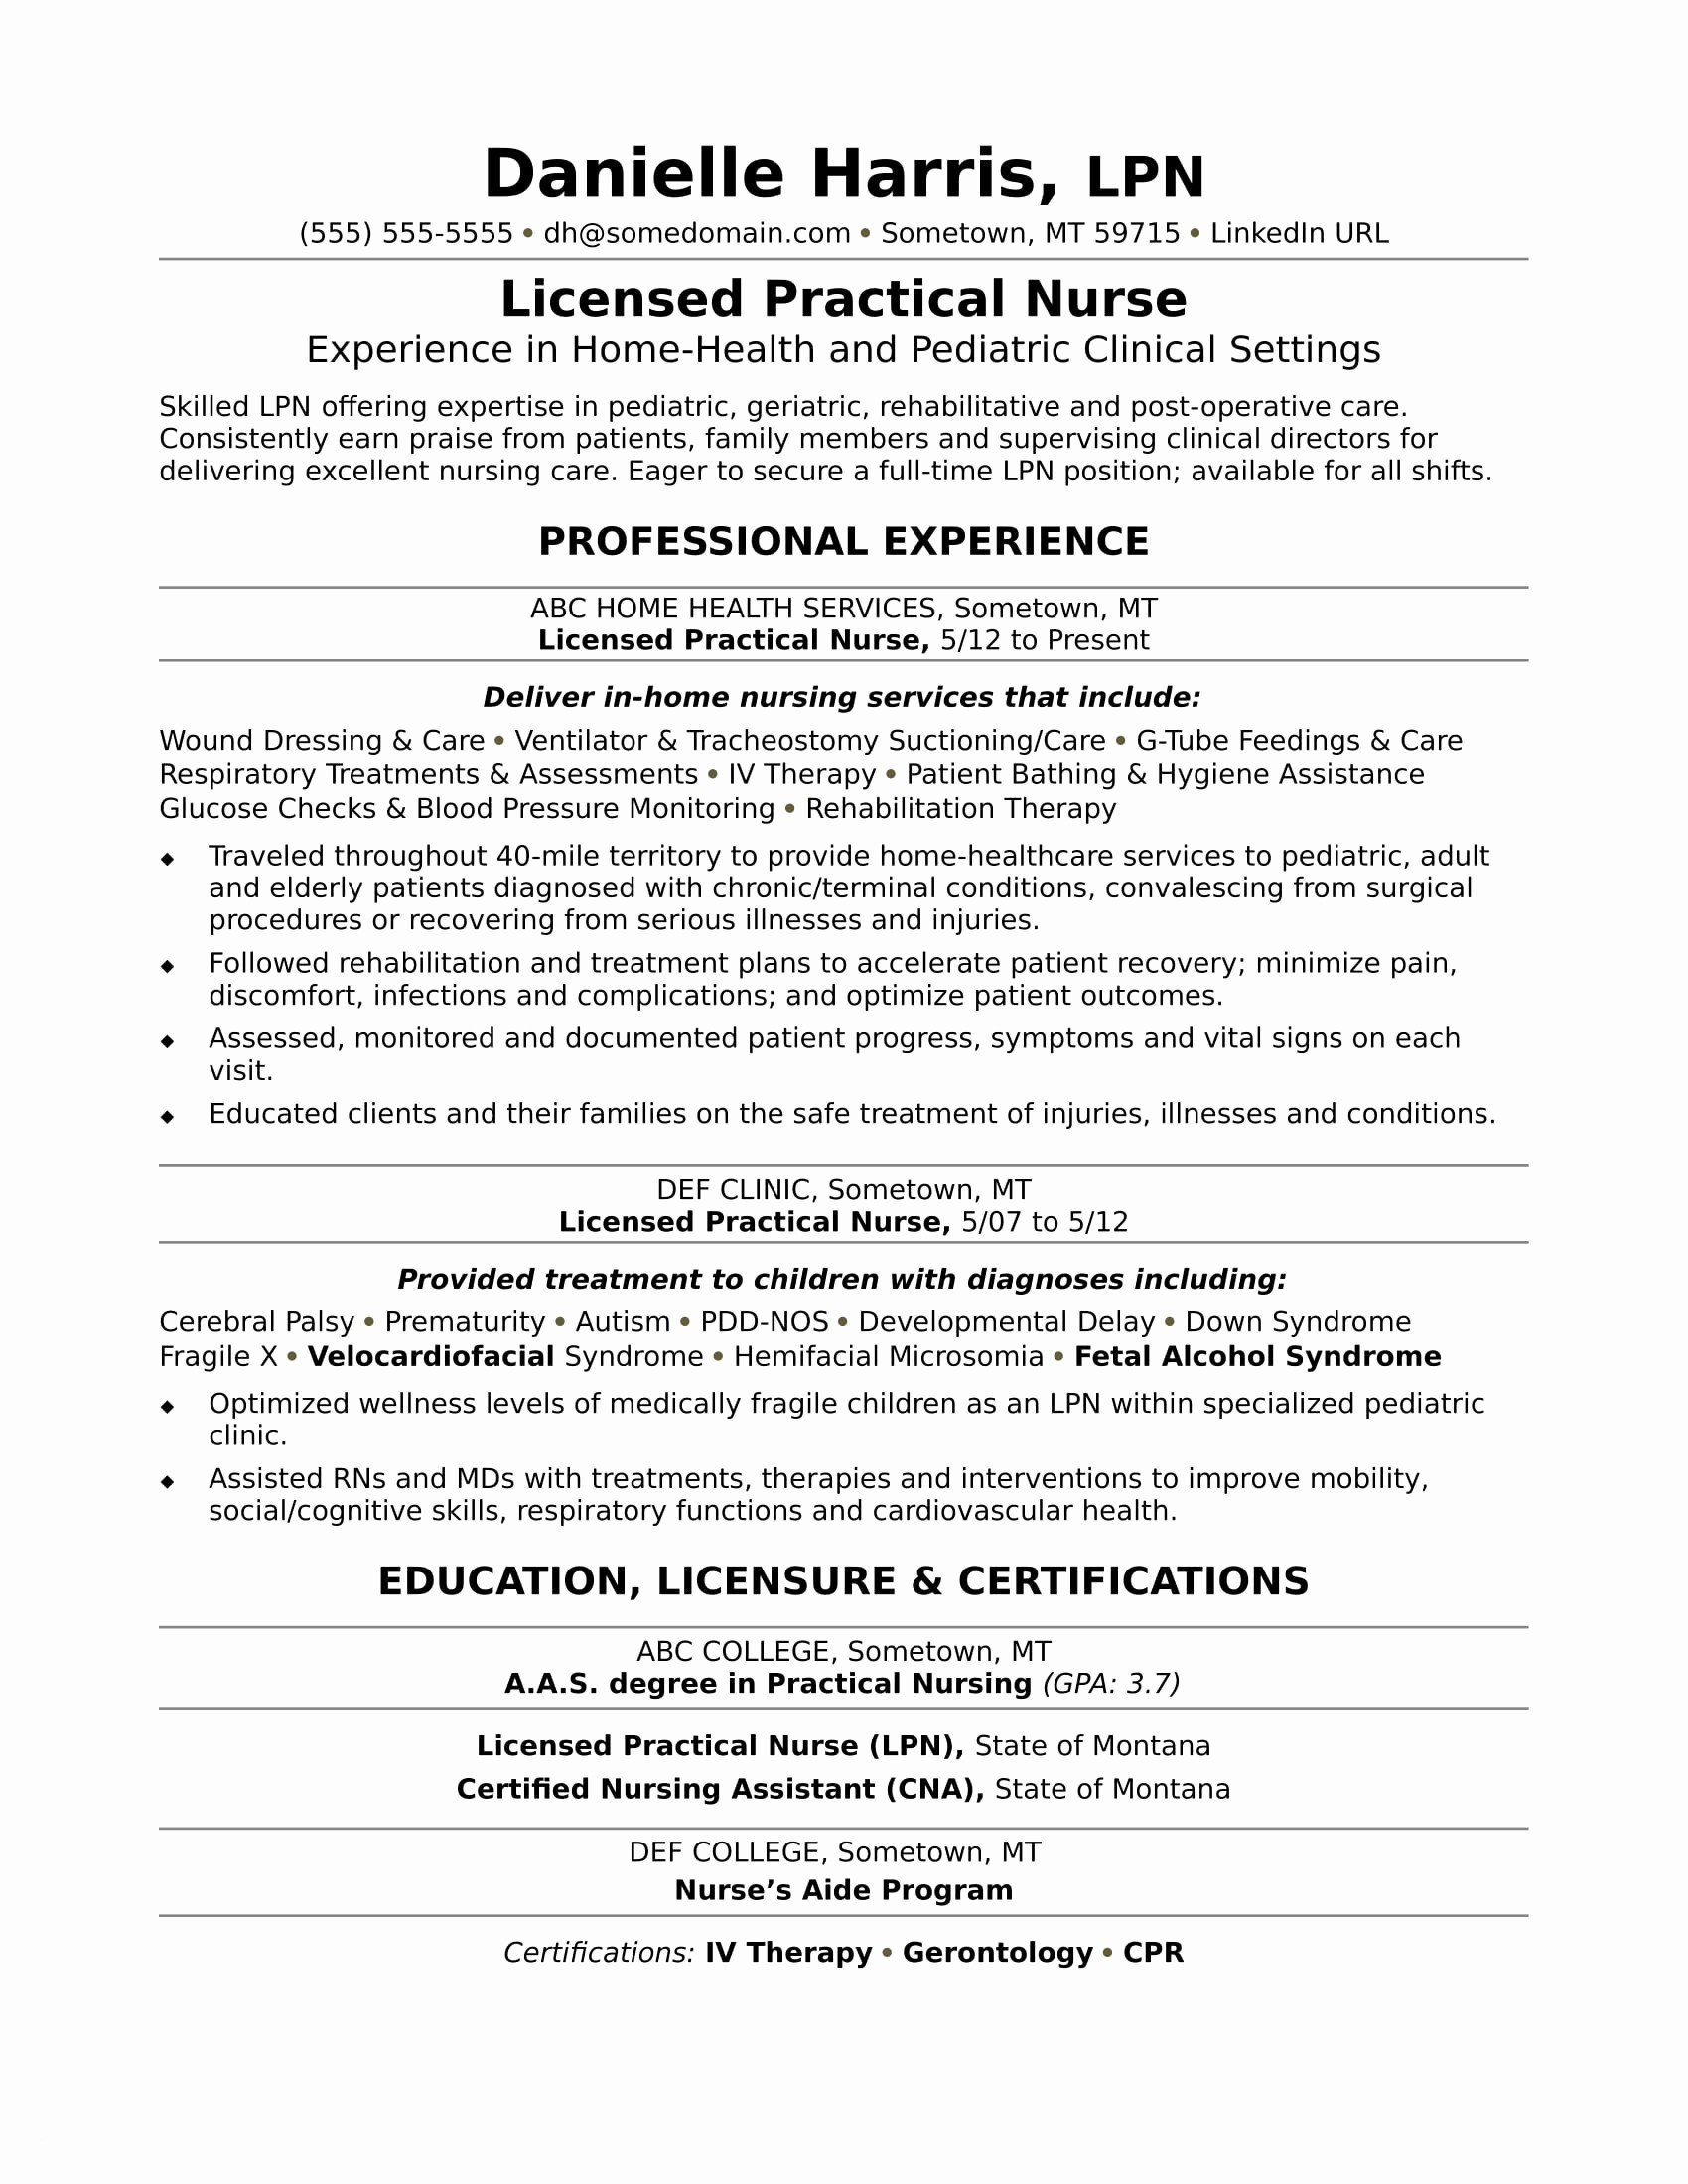 Job Description for Resume - Respiratory therapist Job Description Resume New Nursing Resume